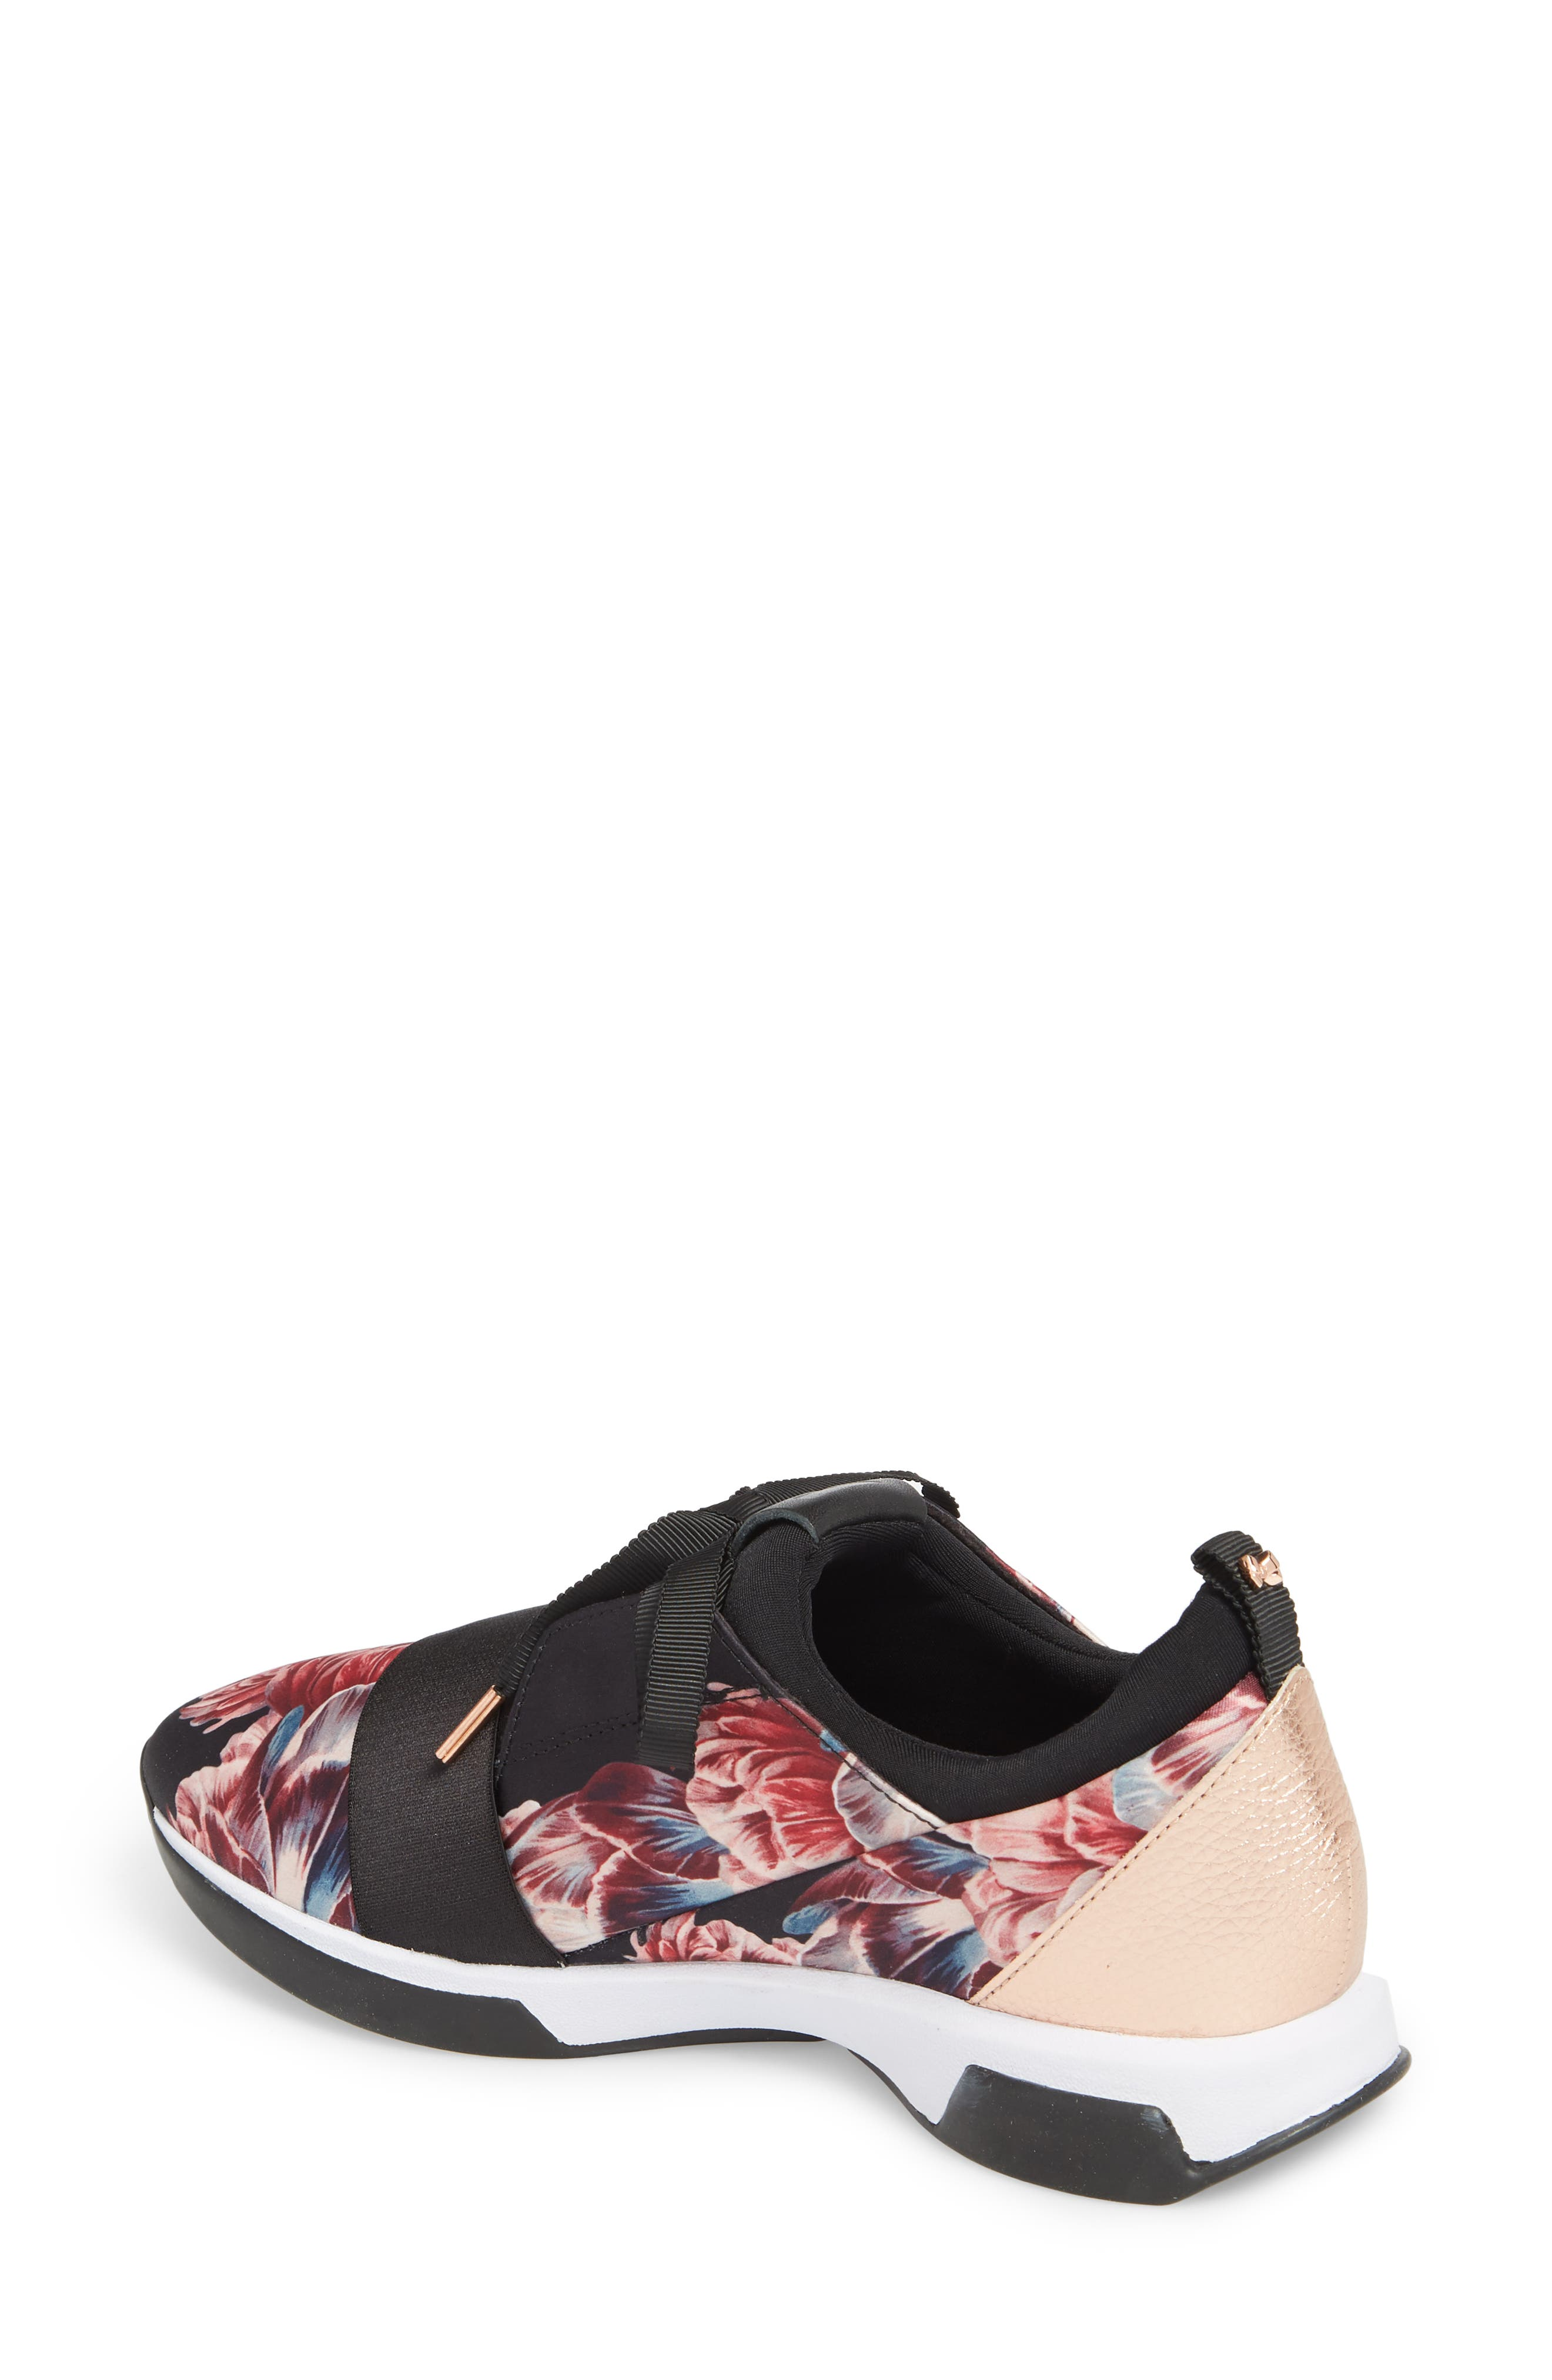 Cepap Sneaker,                             Alternate thumbnail 2, color,                             Tranquility Fabric